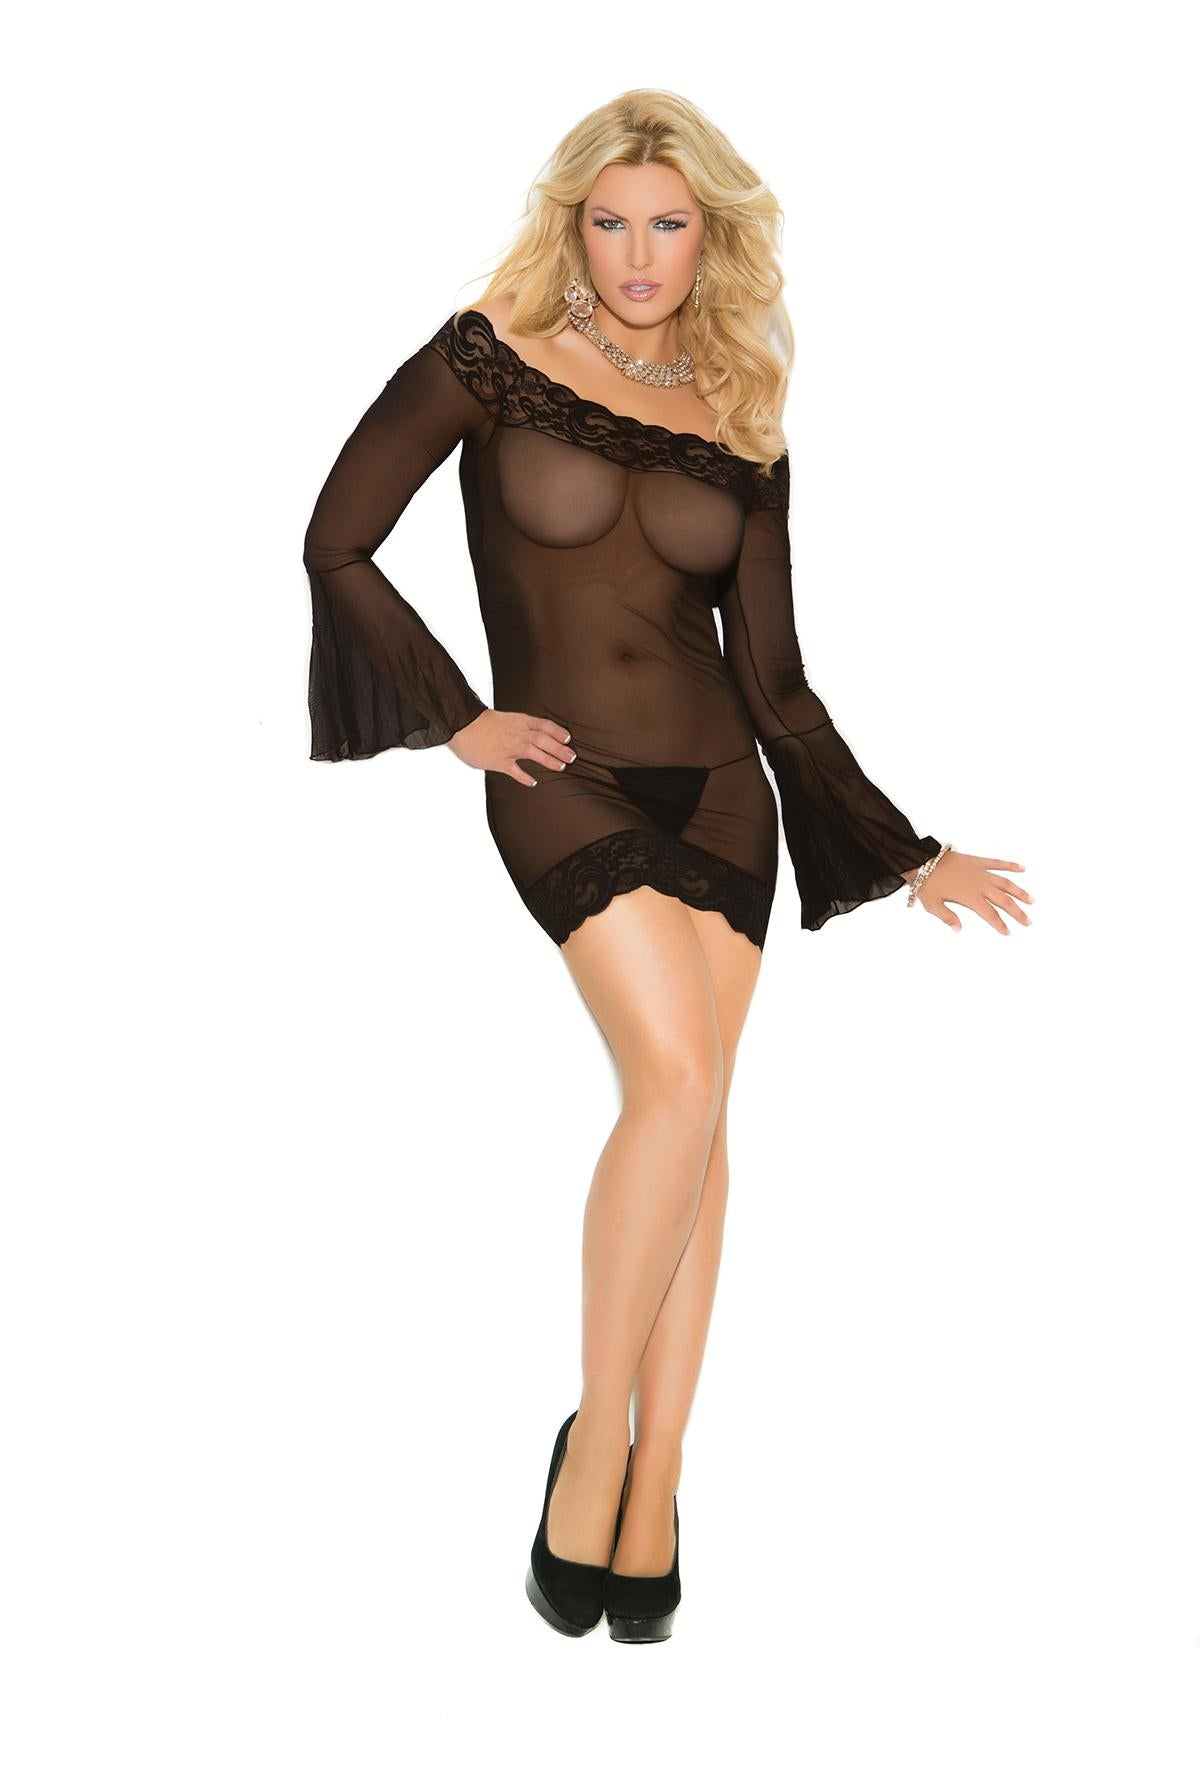 PLUS Bell Sleeves Mesh Mini Lingerie Dress lace